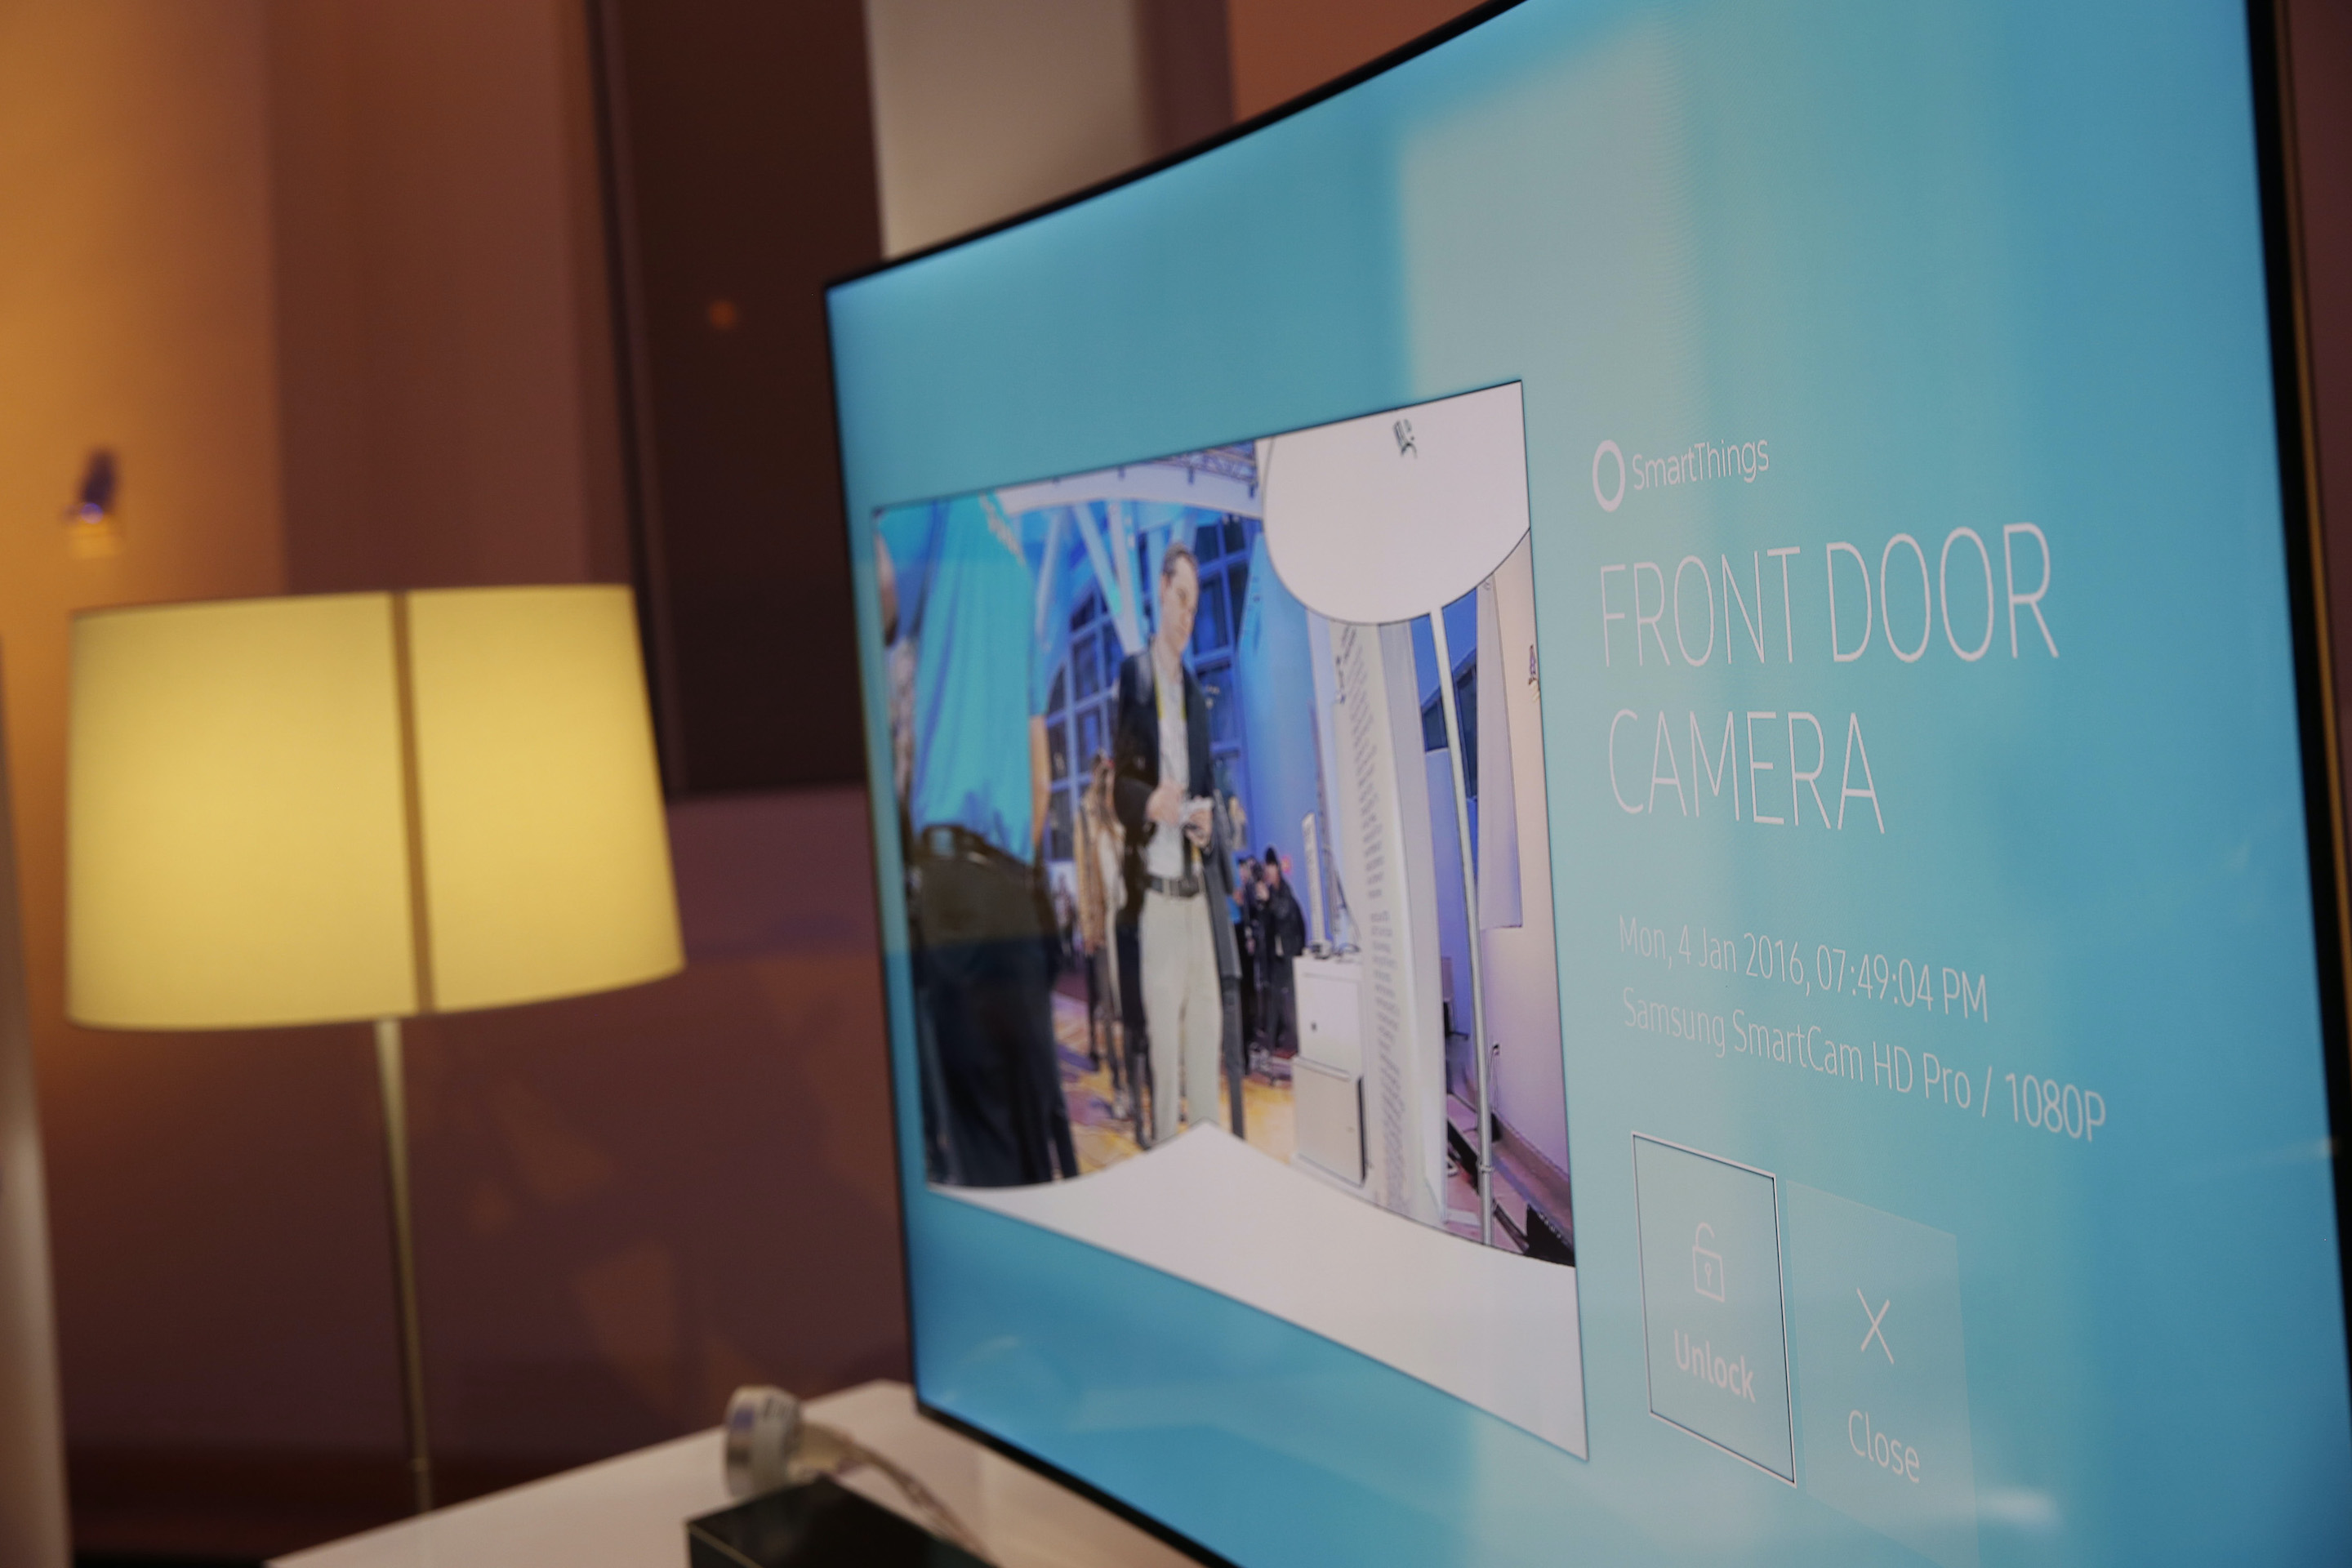 Smart TVs lead wave of smart home purchases during Covid-19